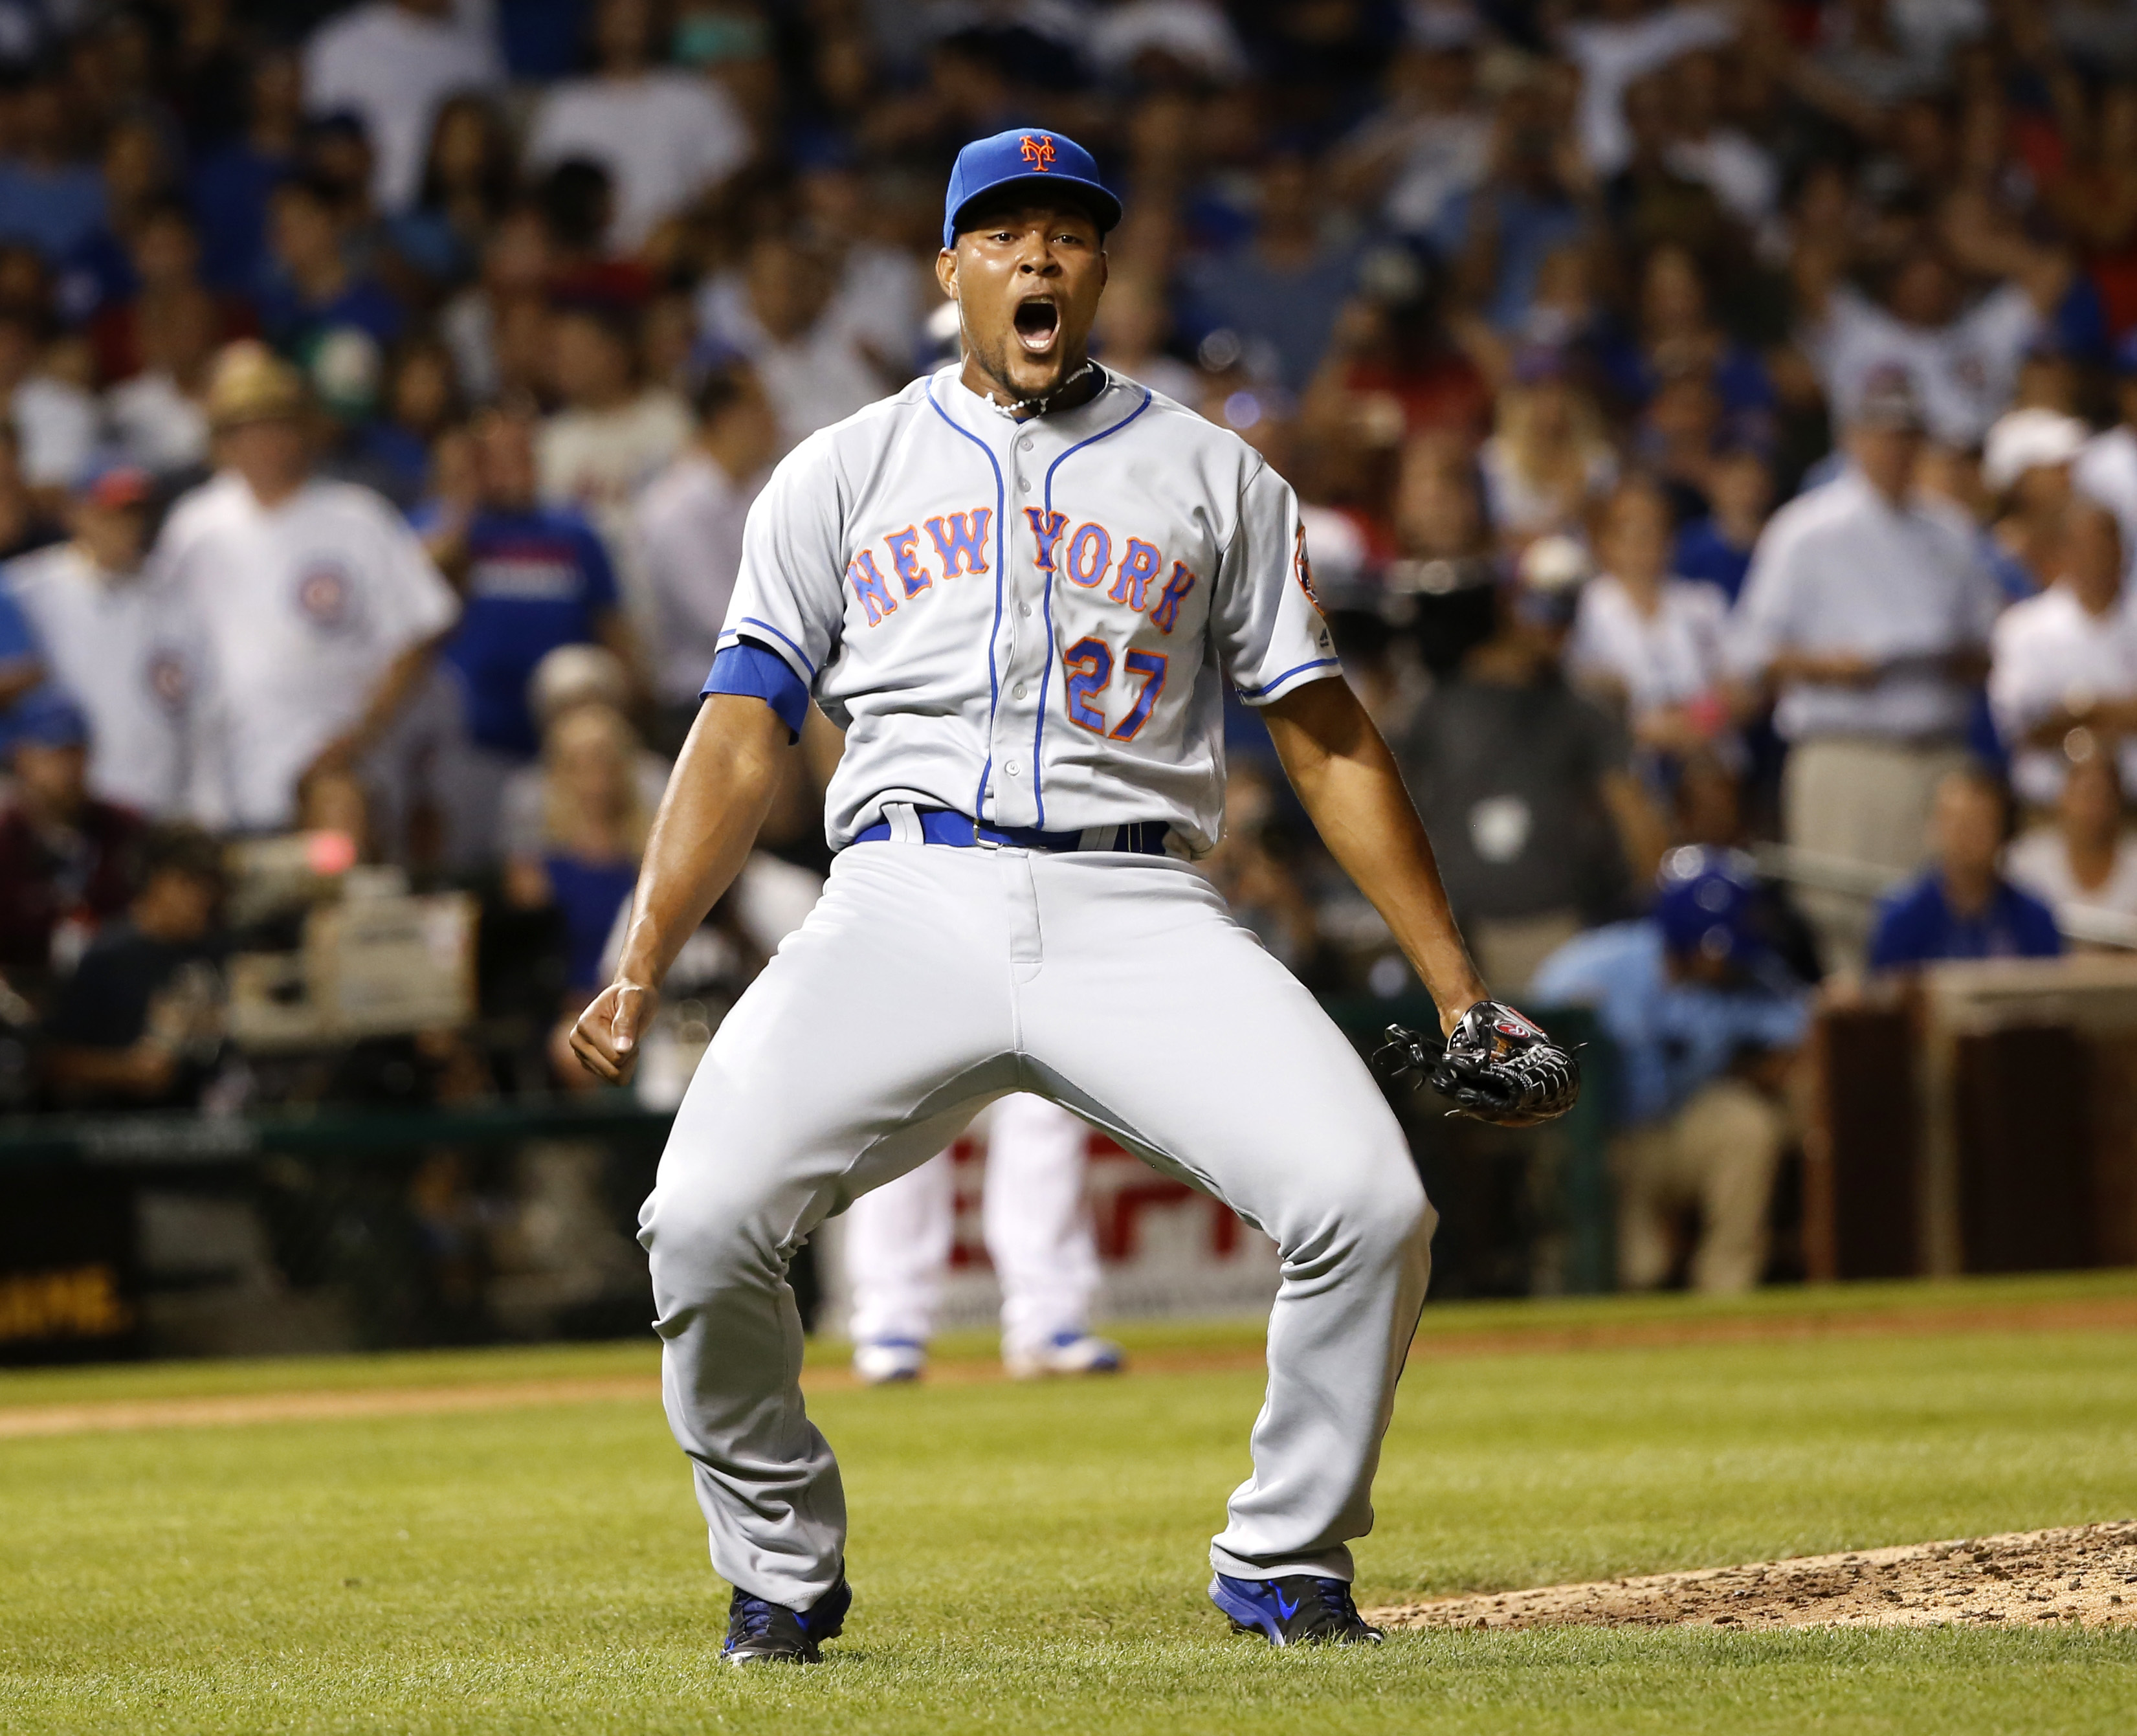 New York Mets relief pitcher Jeurys Familia celebrates the Mets' 2-1 win over the Chicago Cubs after a baseball game Tuesday, July 19, 2016, in Chicago. (AP Photo/Charles Rex Arbogast)